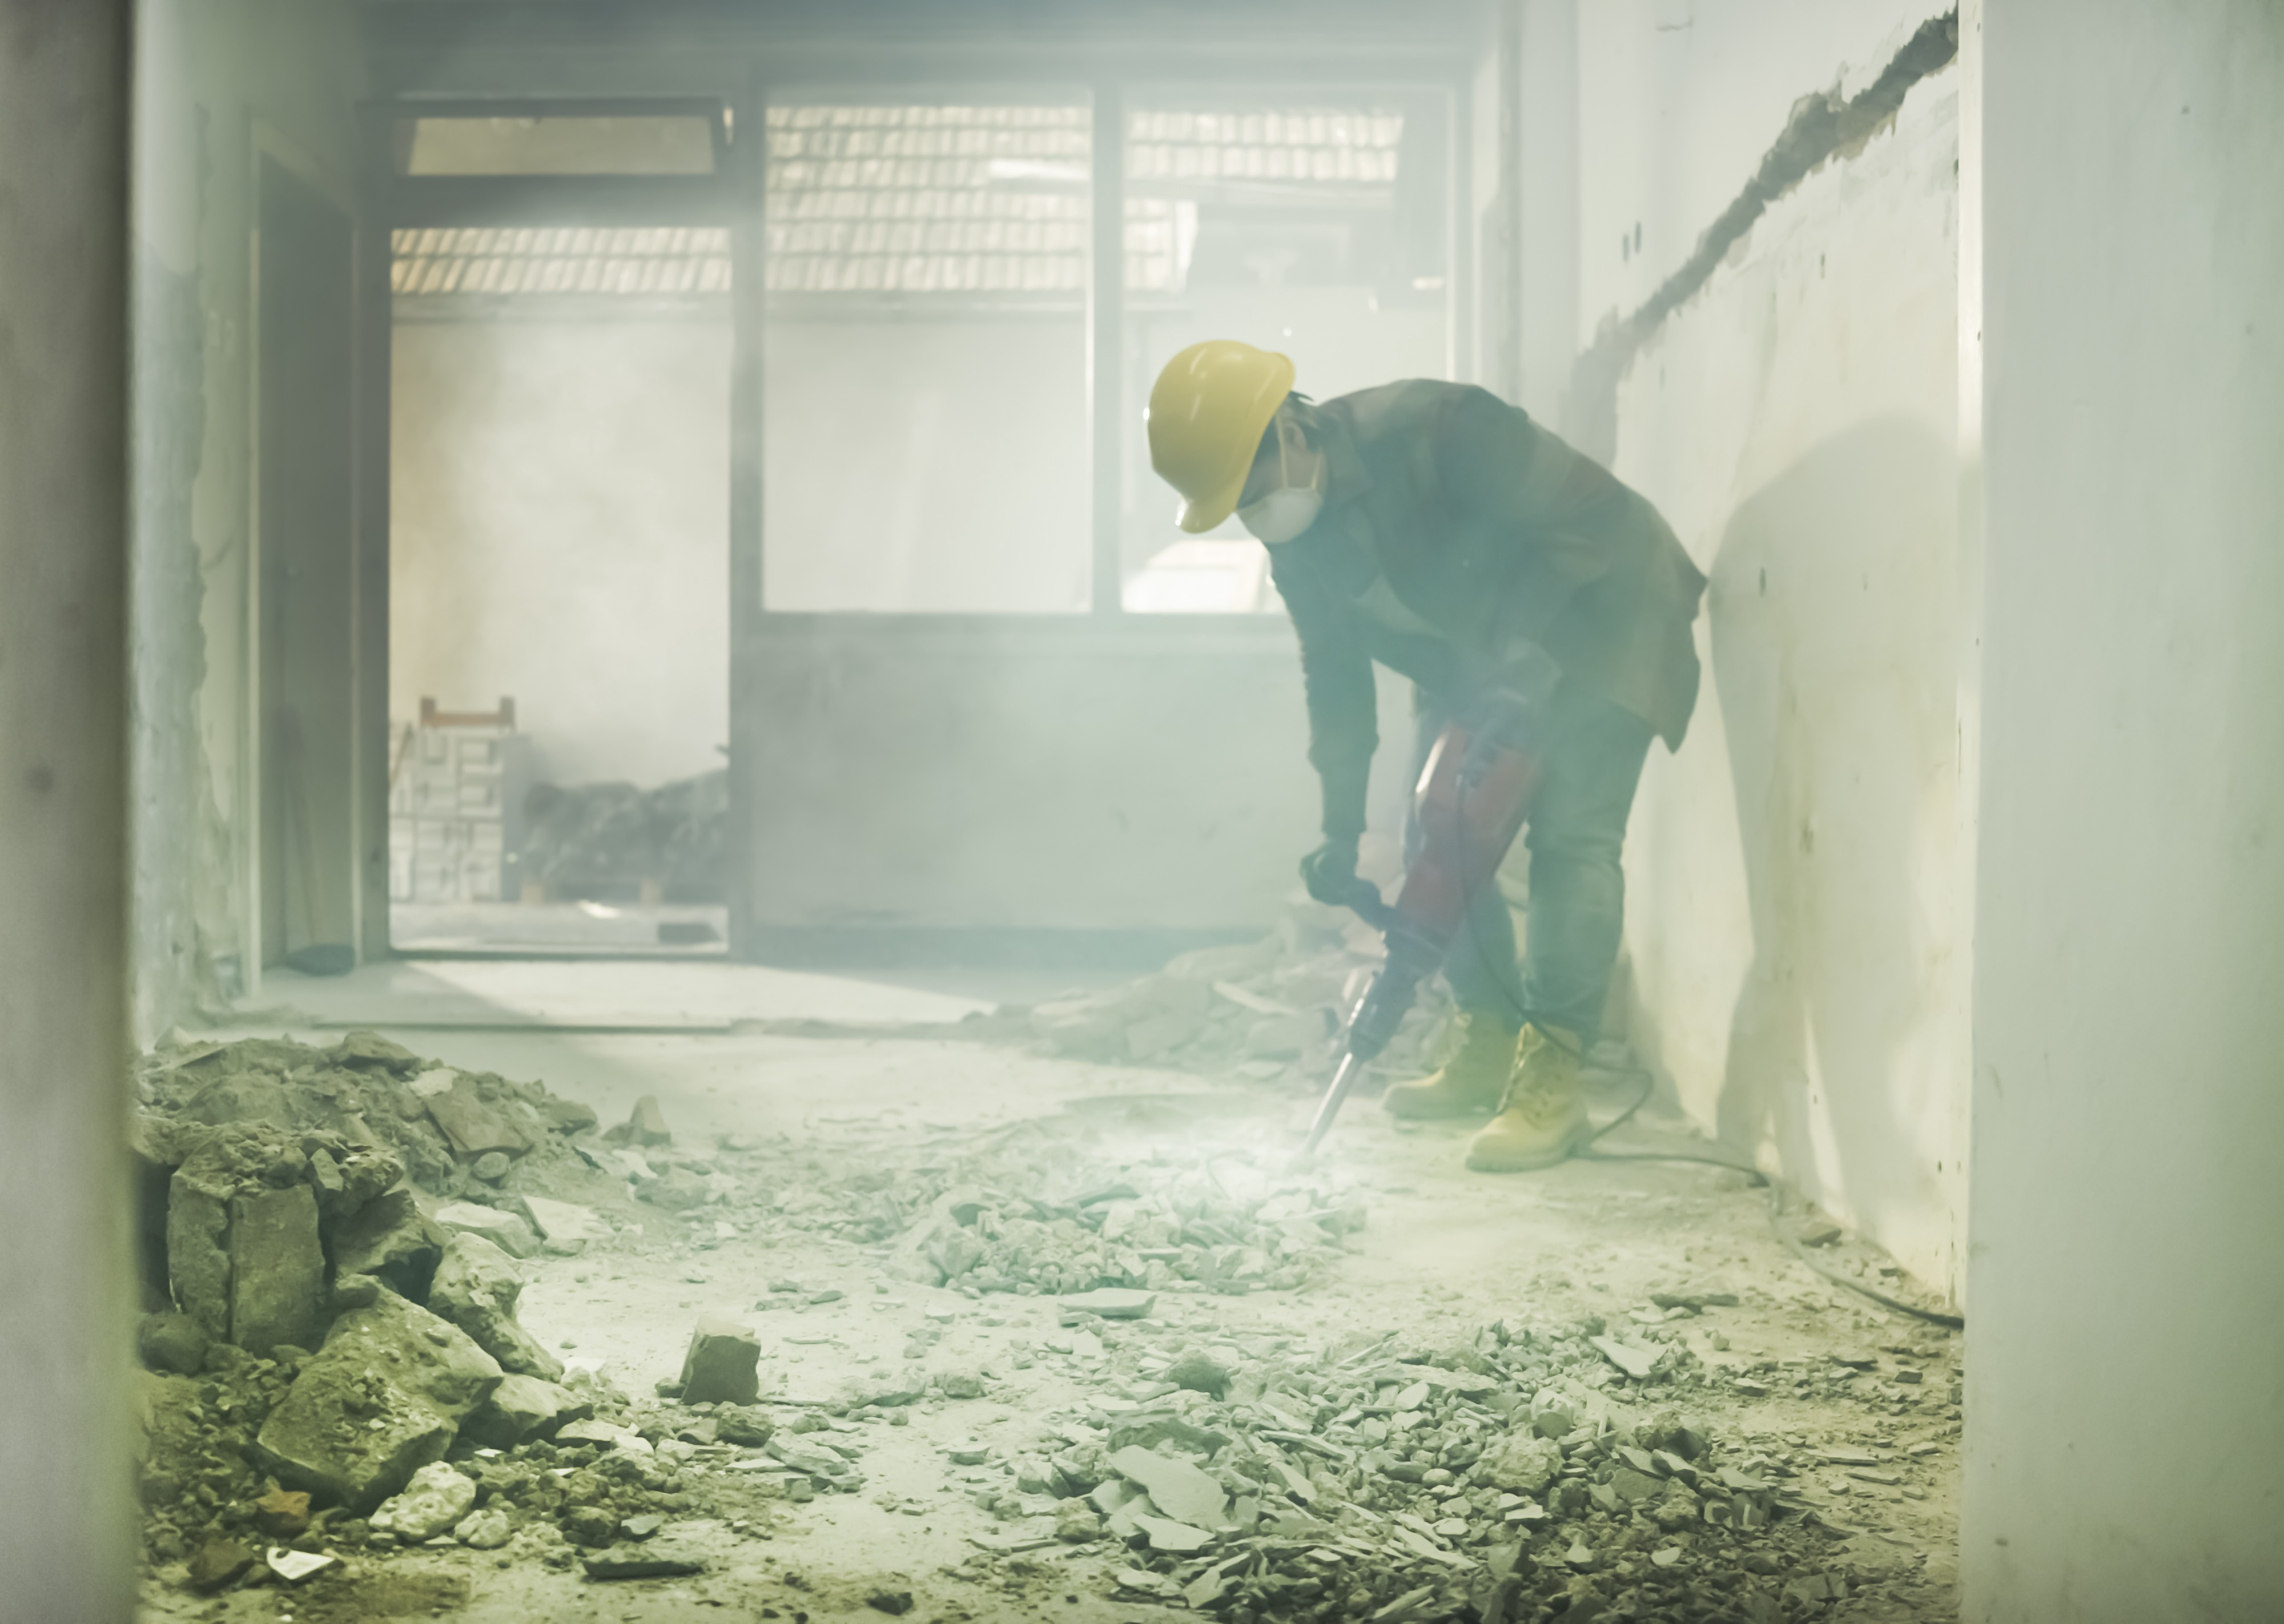 Dust surrounds a construction worker wearing a mask as they drill into a floor.